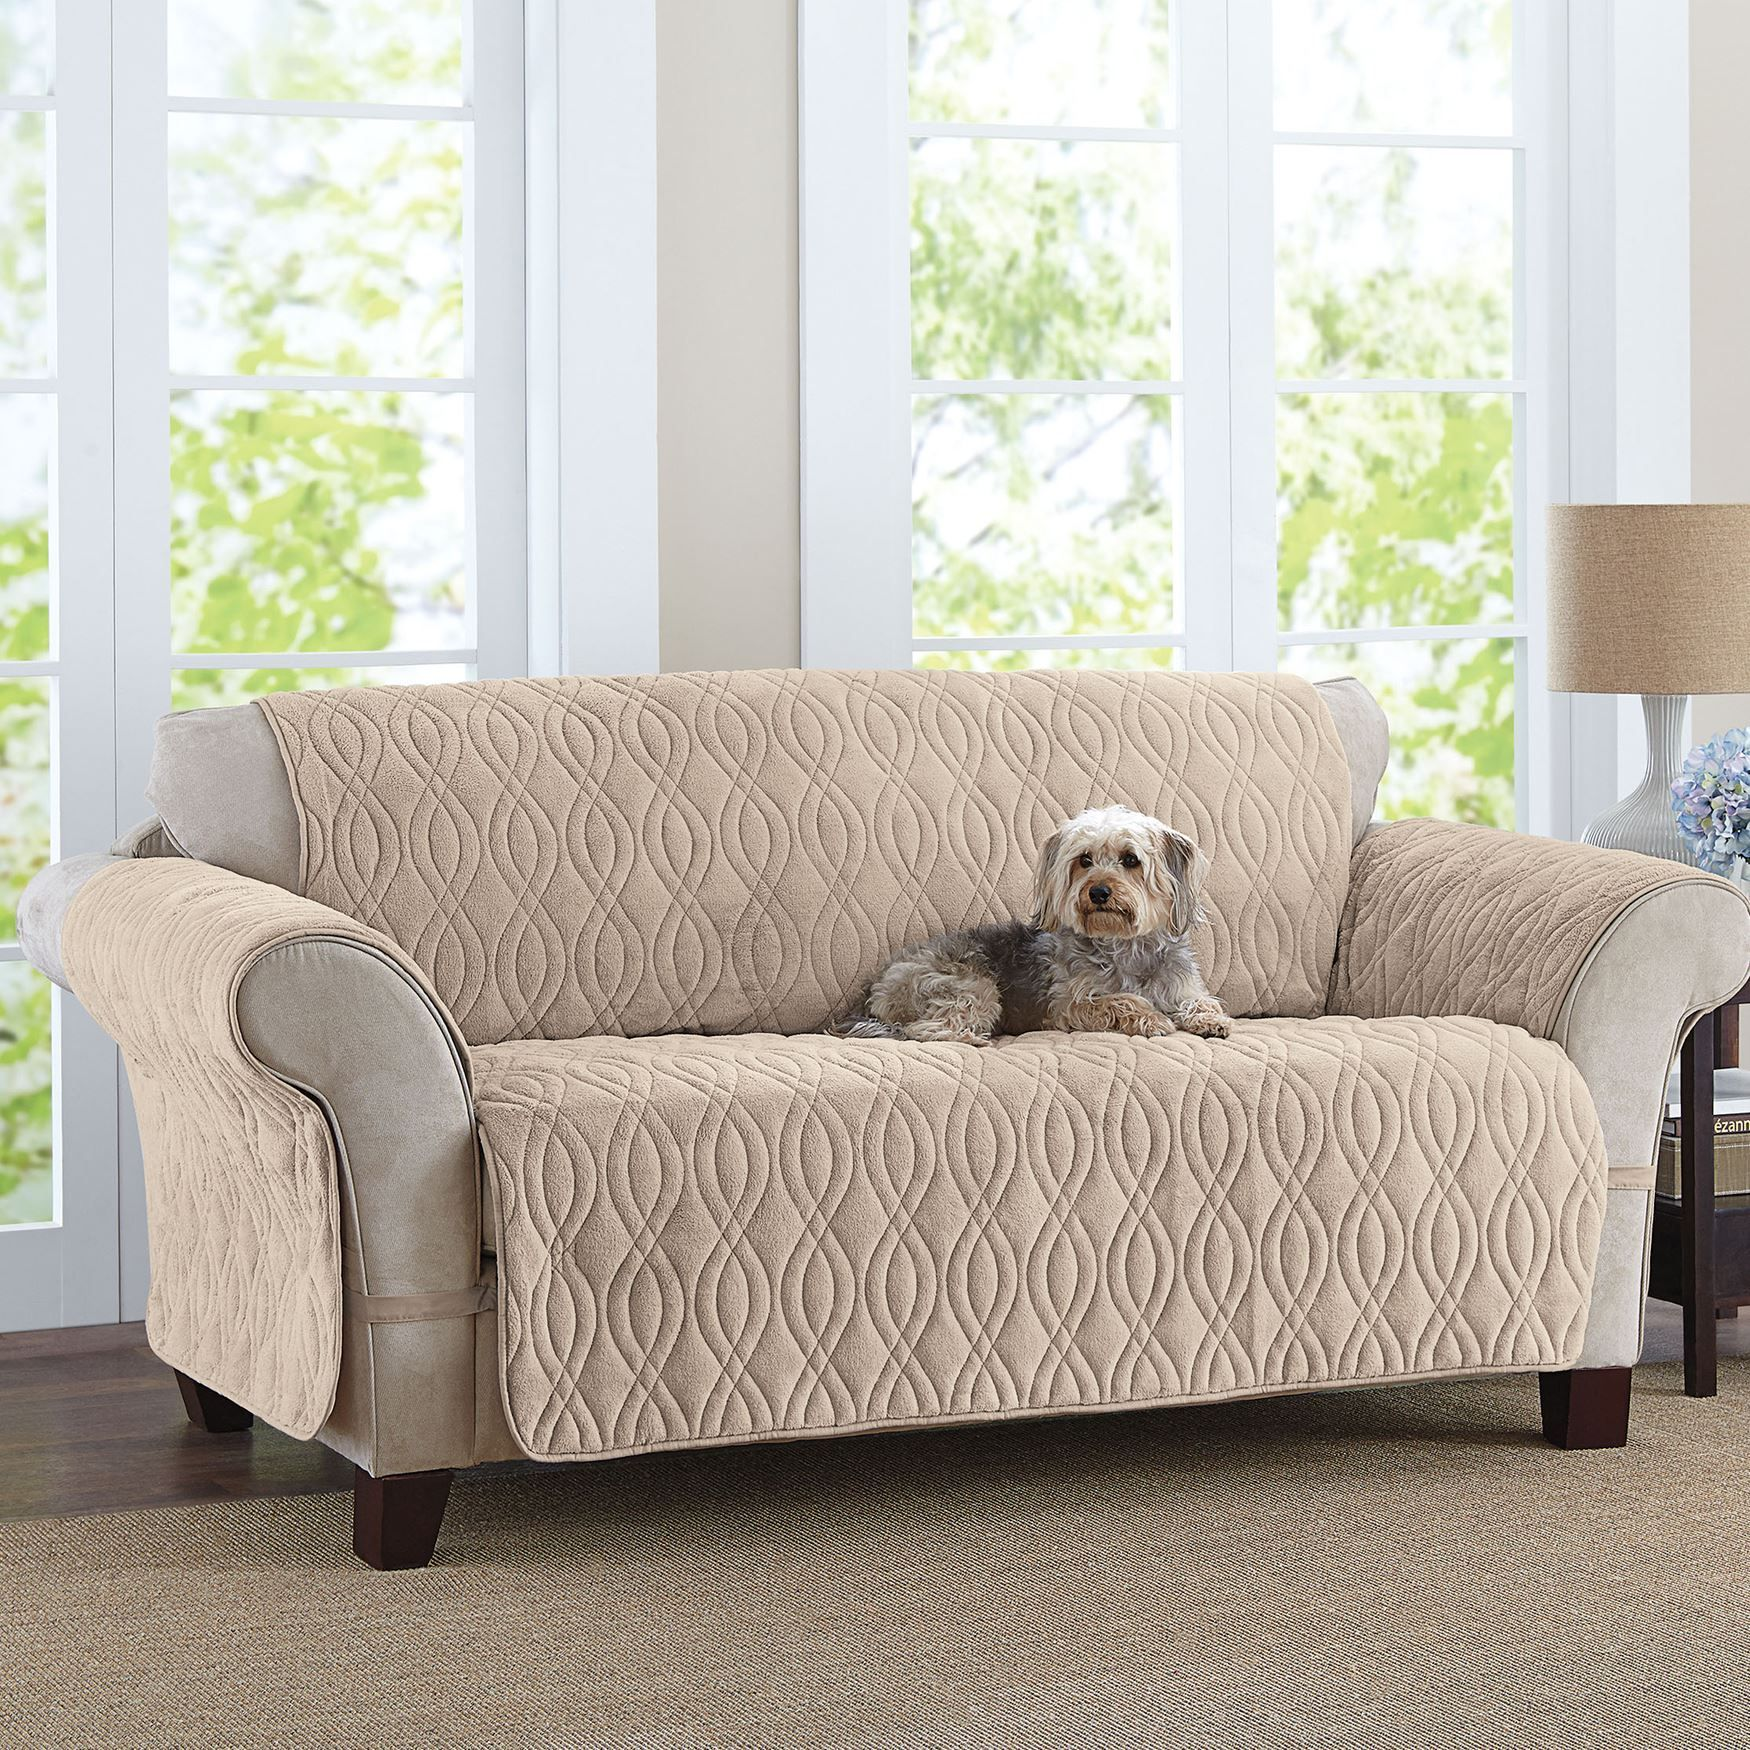 This Deluxe Quilted Fleece Like Sofa Cover Is Designed To Wrap All The Way